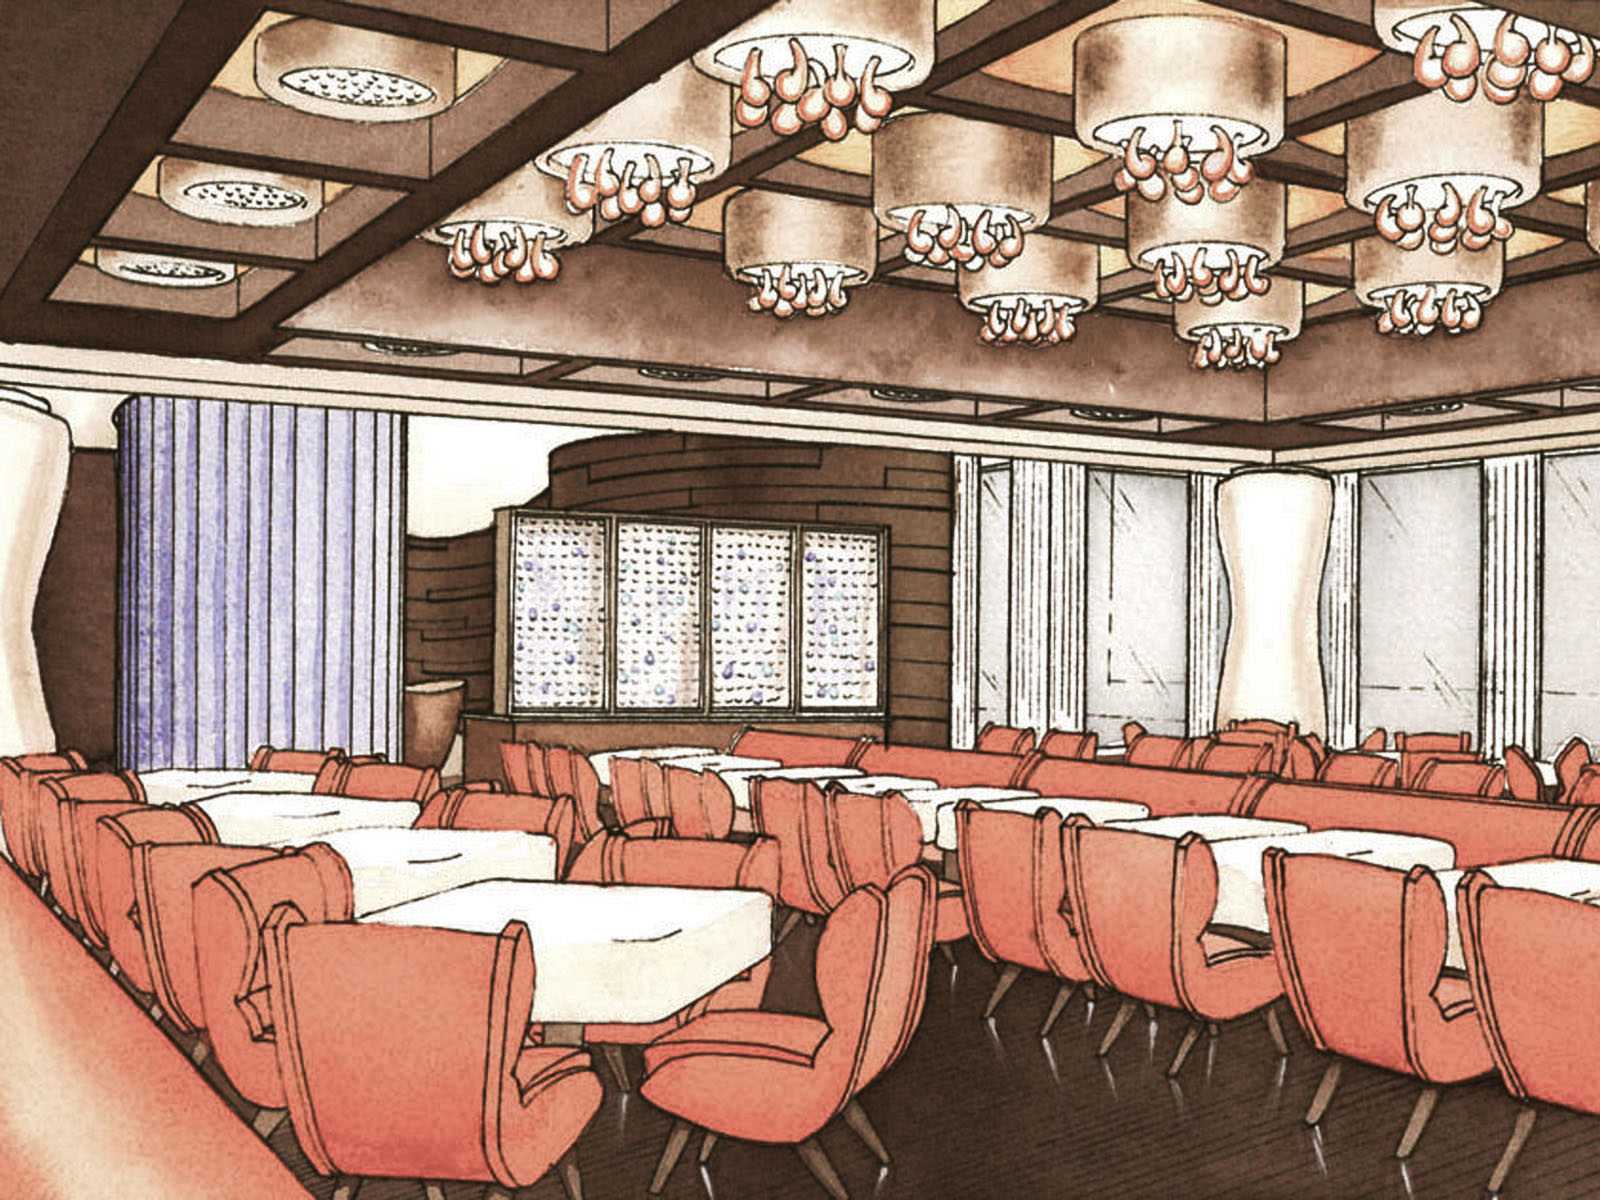 Watercolor of Dining Room